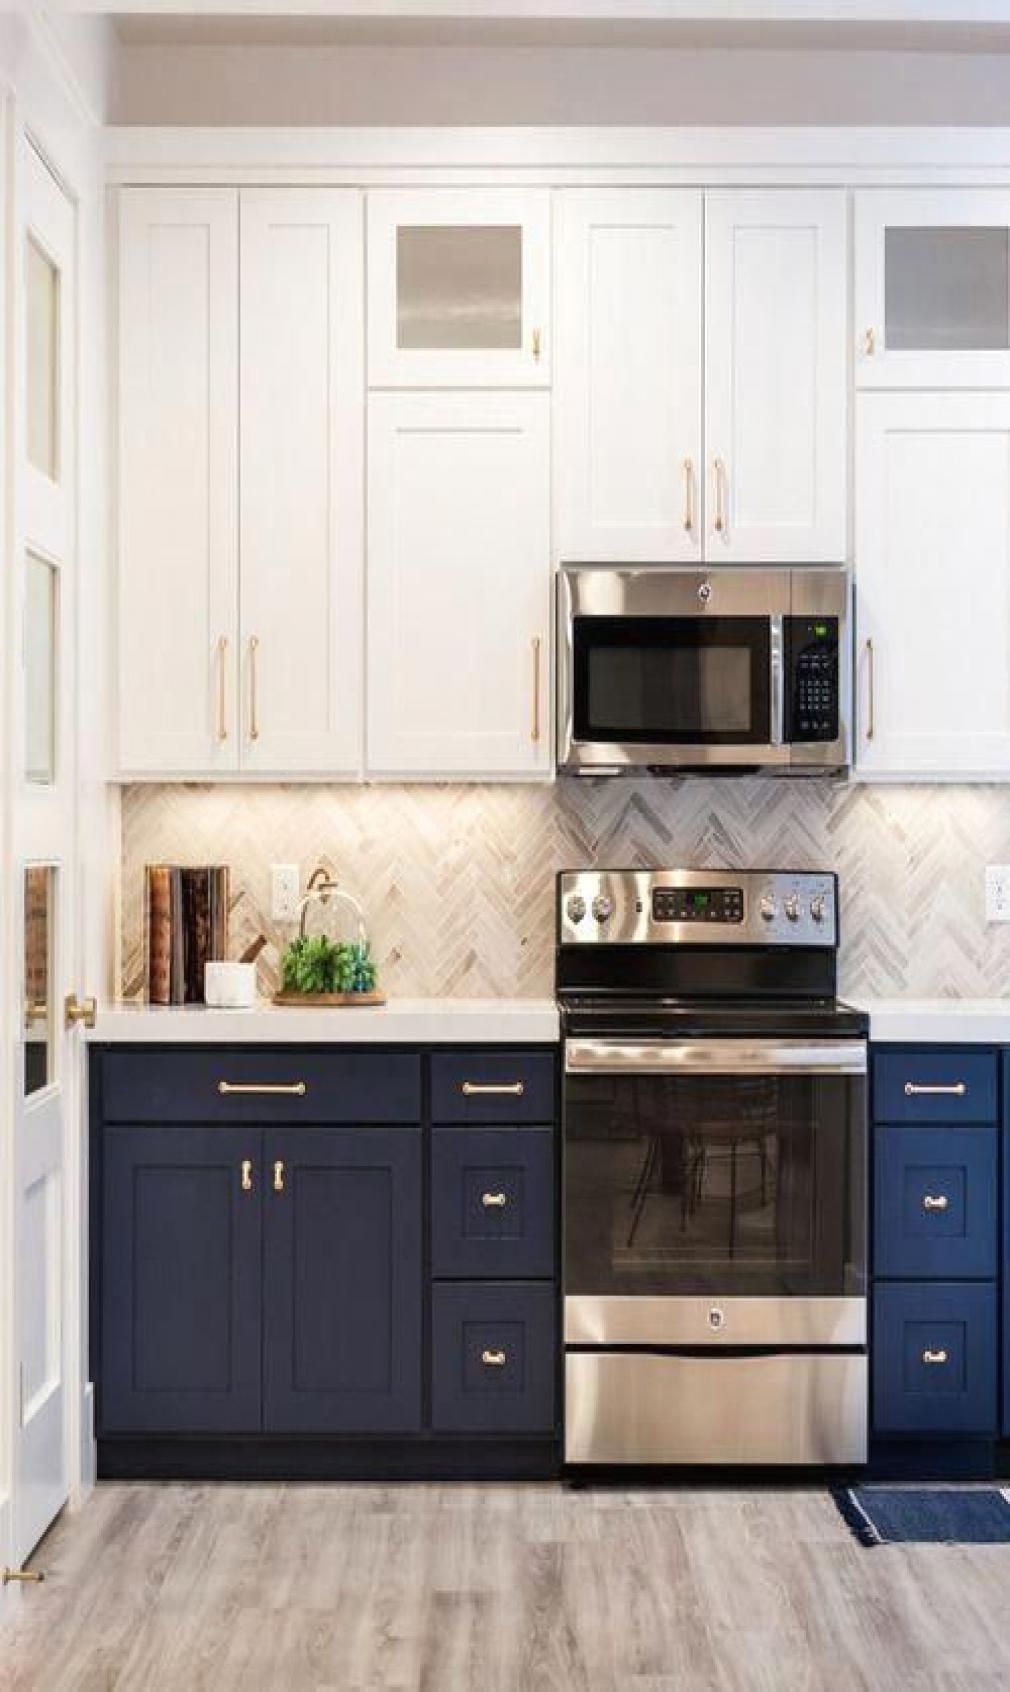 48 Inspiring Cottage Kitchen Cabinets Ideas With Country Style In 2020 Kitchen Cabinets Decor New Kitchen Cabinets Kitchen Cabinet Trends